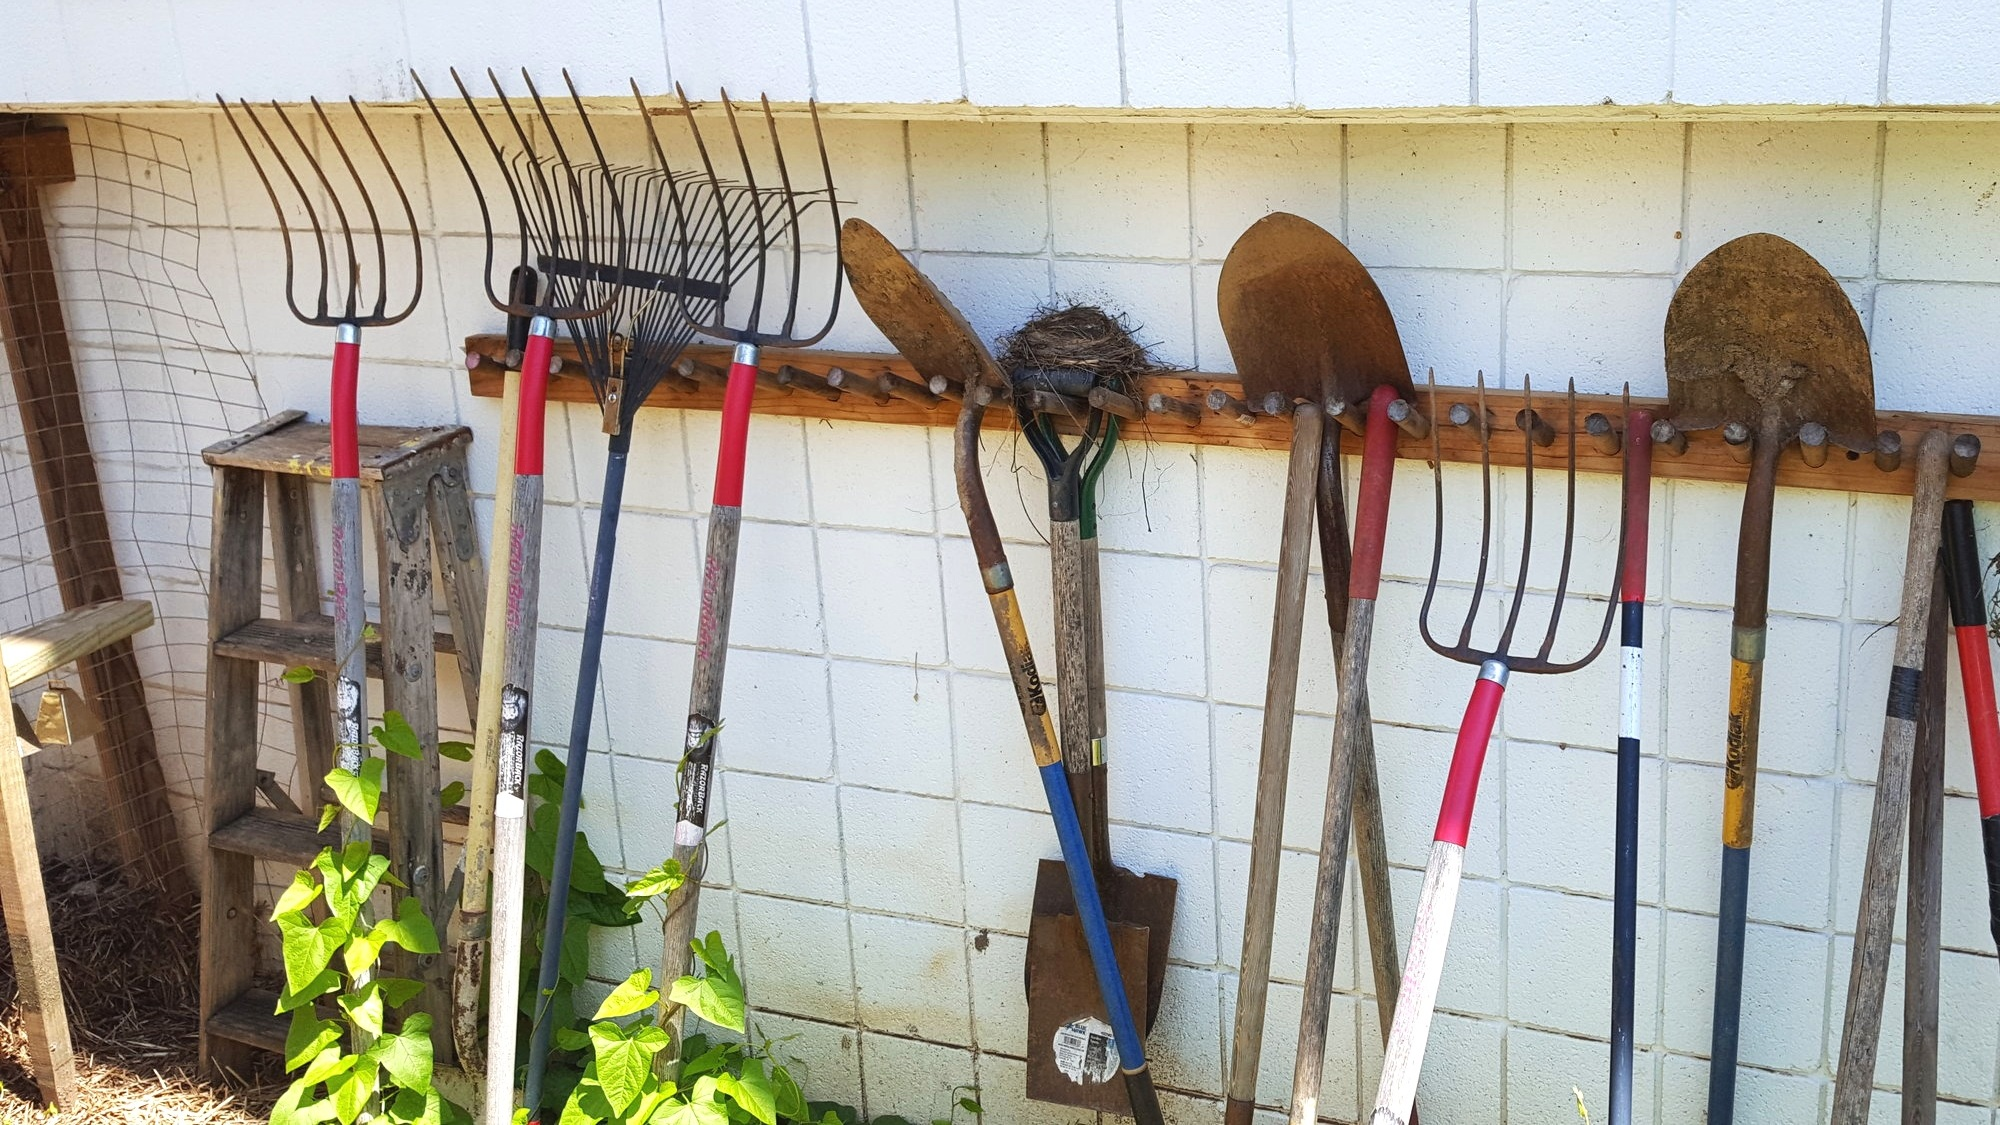 All gardens start with a set of trusty tools!